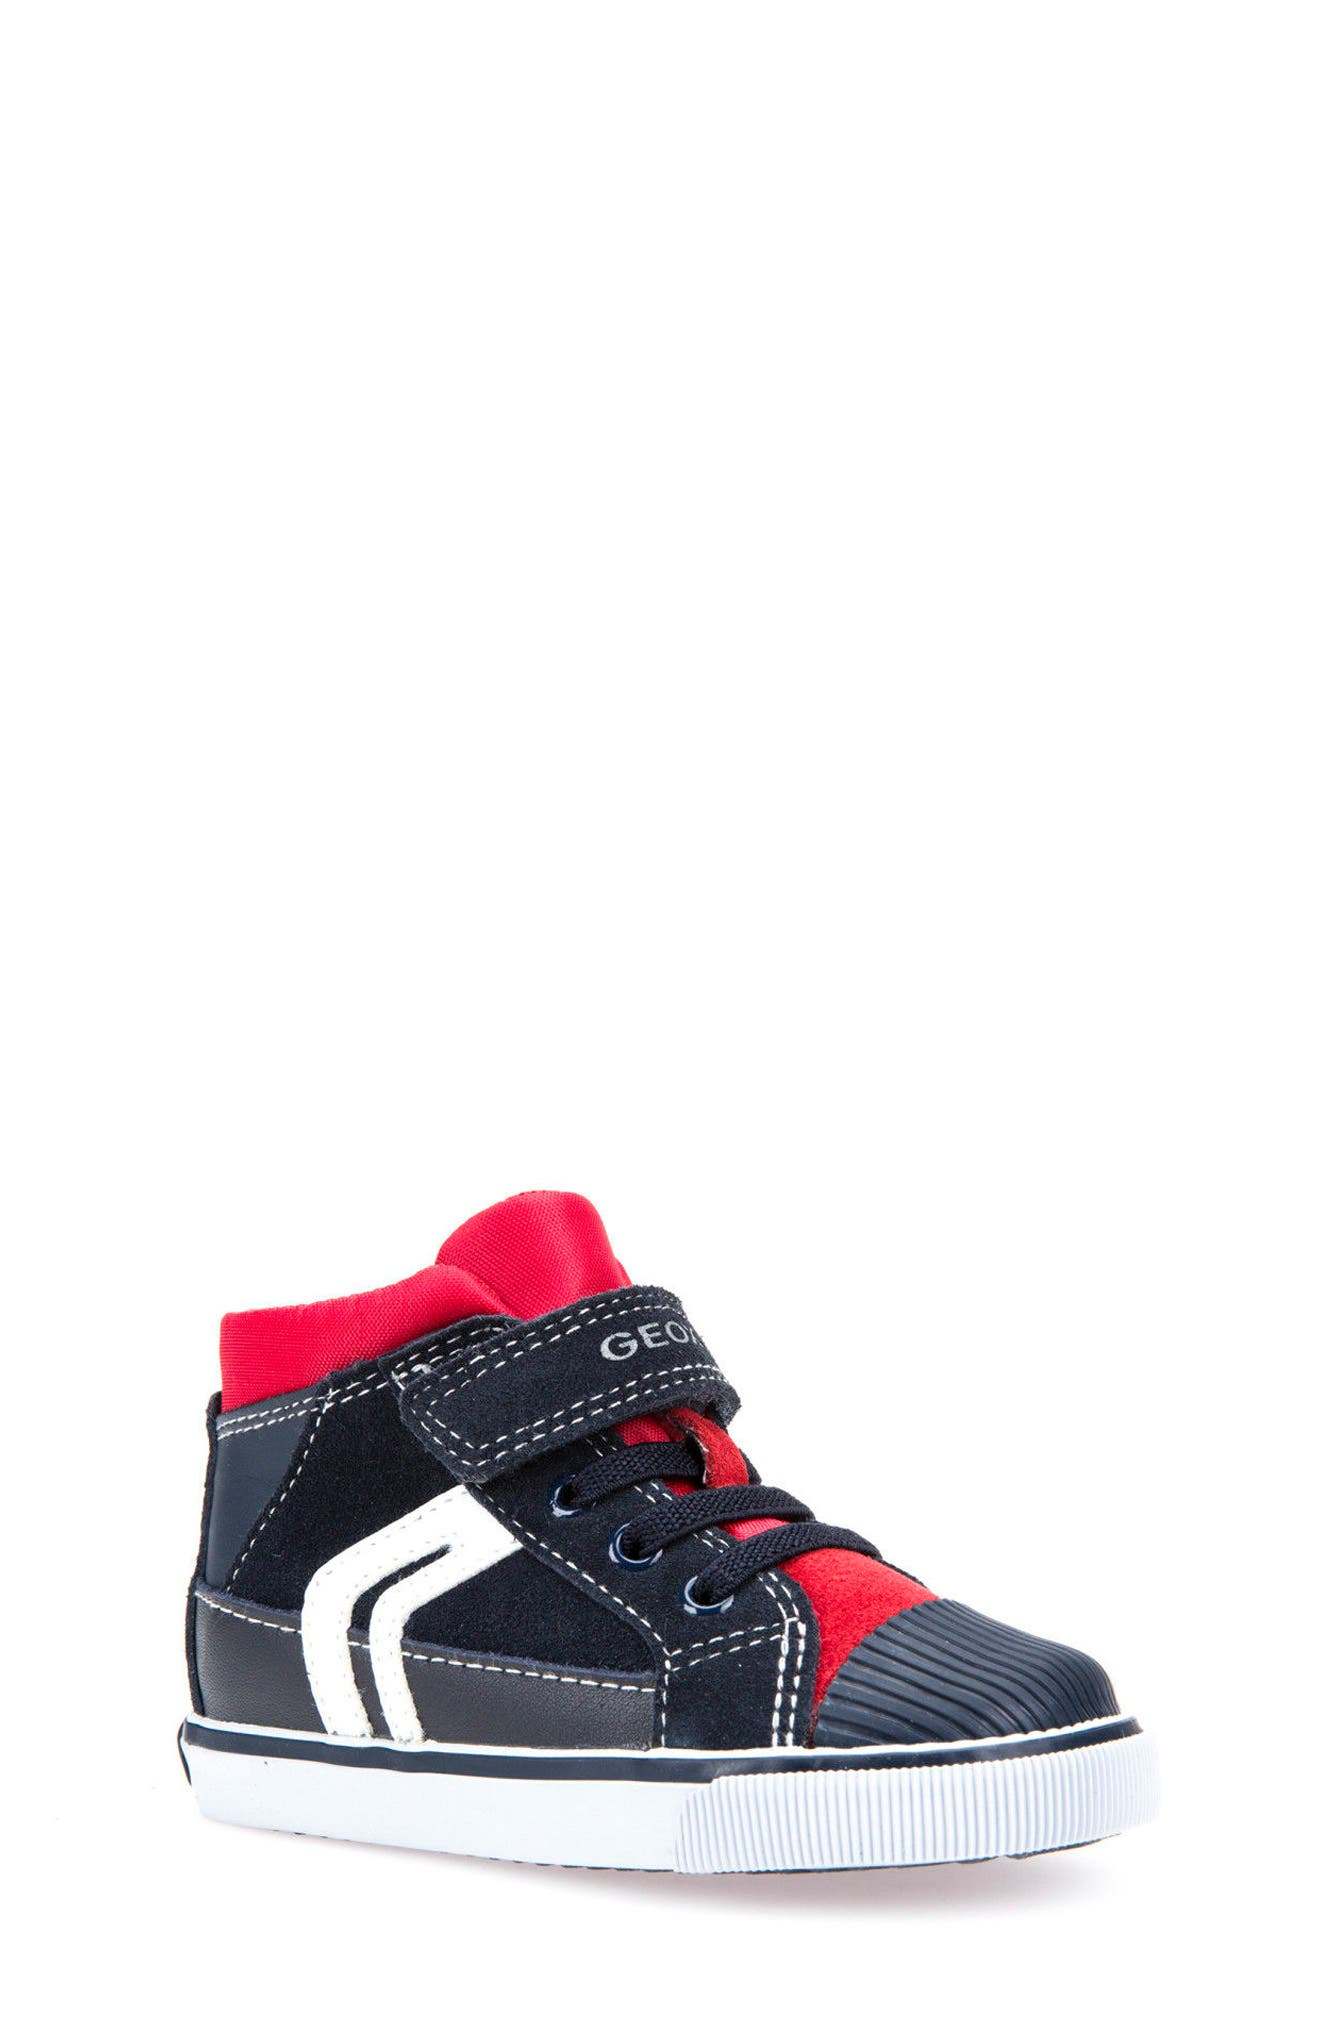 Kiwi Boy High Top Sneaker,                         Main,                         color, Navy/ Red